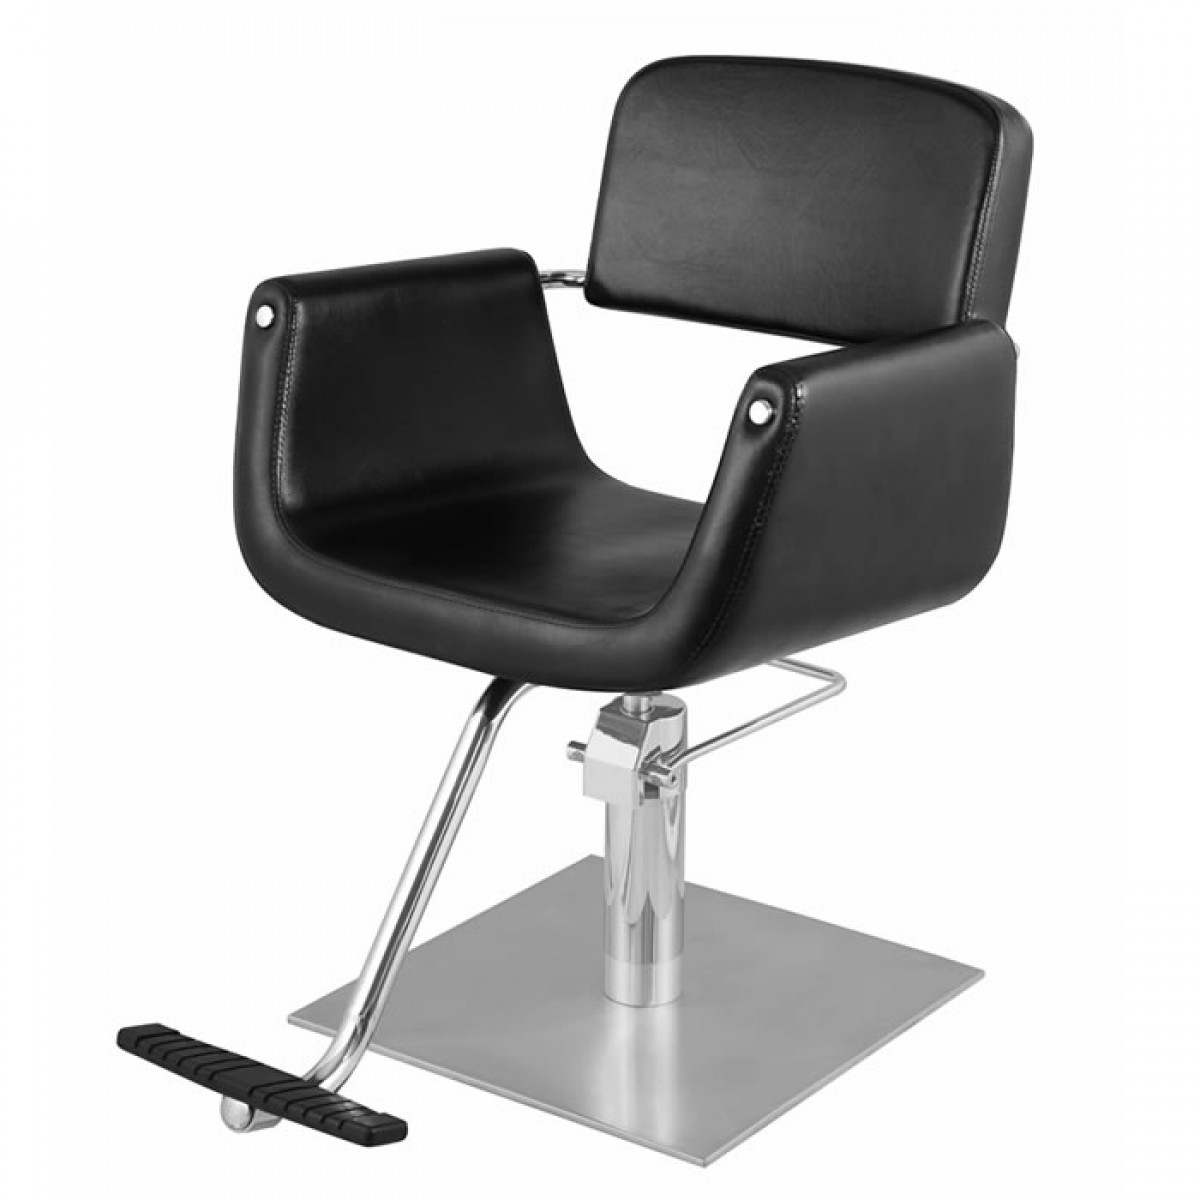 """PALLADIO"" Beauty Salon Chair, Beauty Salon Furniture"